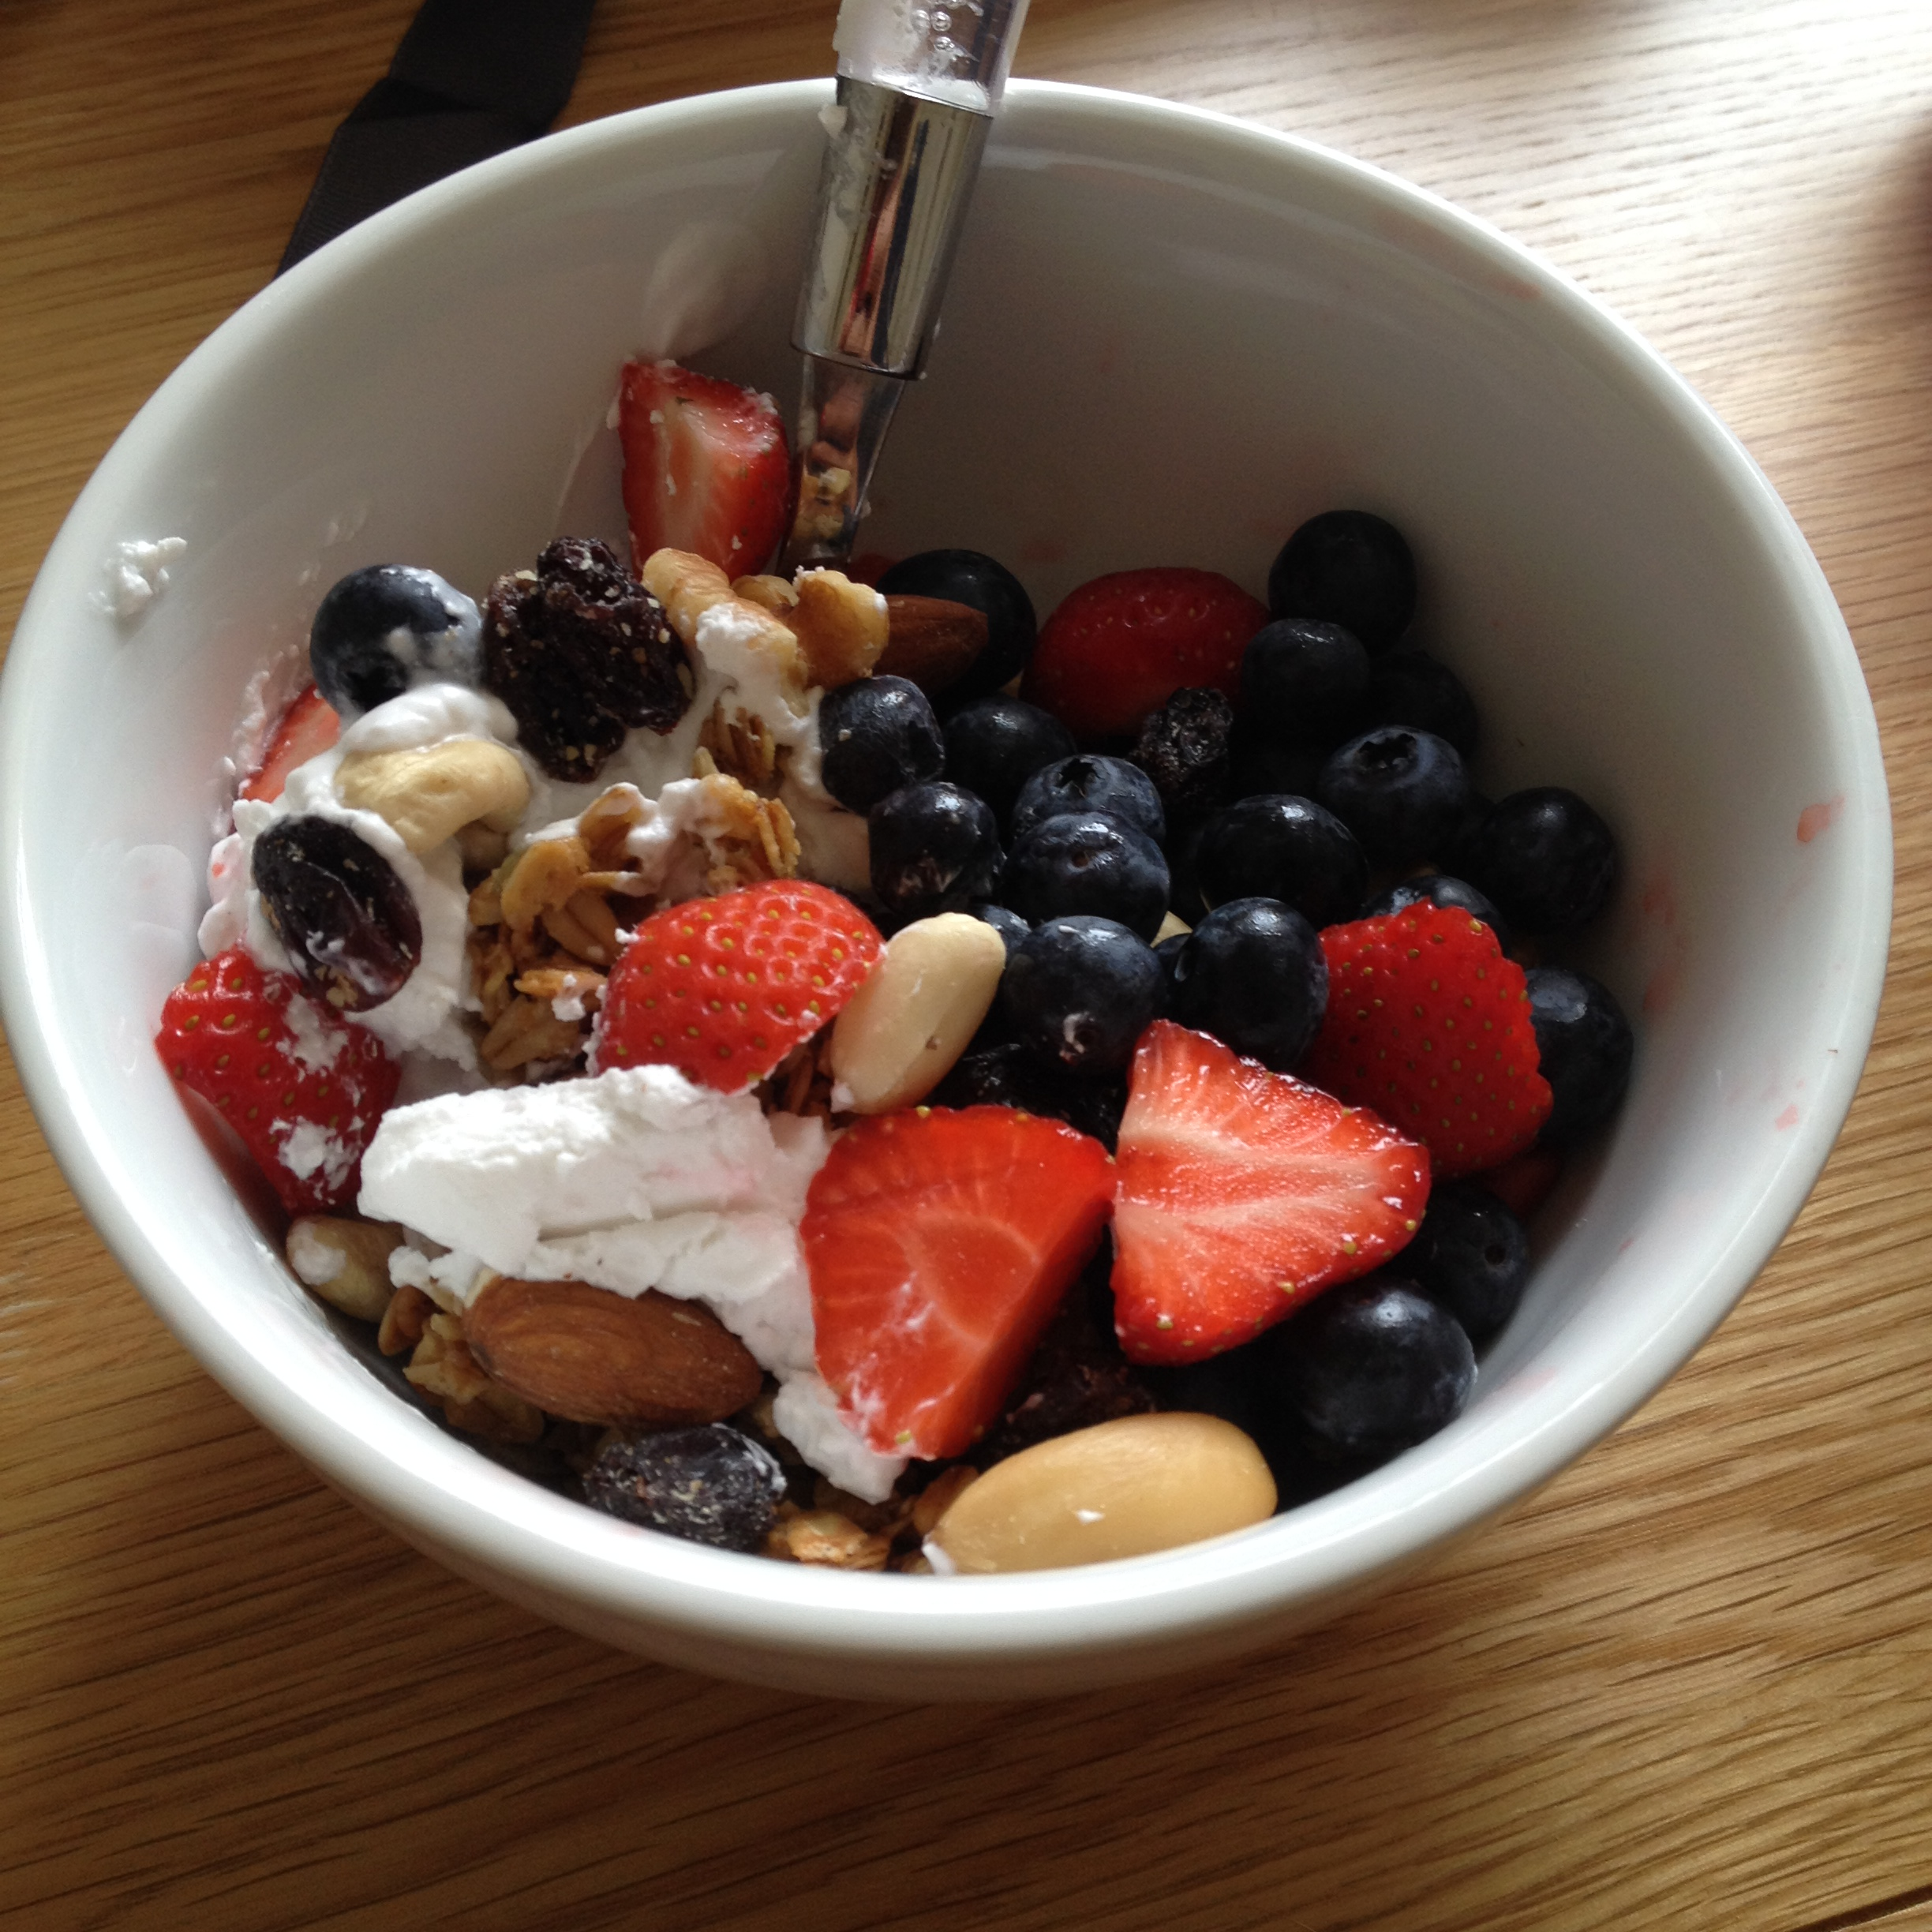 Blueberries and nuts with yoghurt